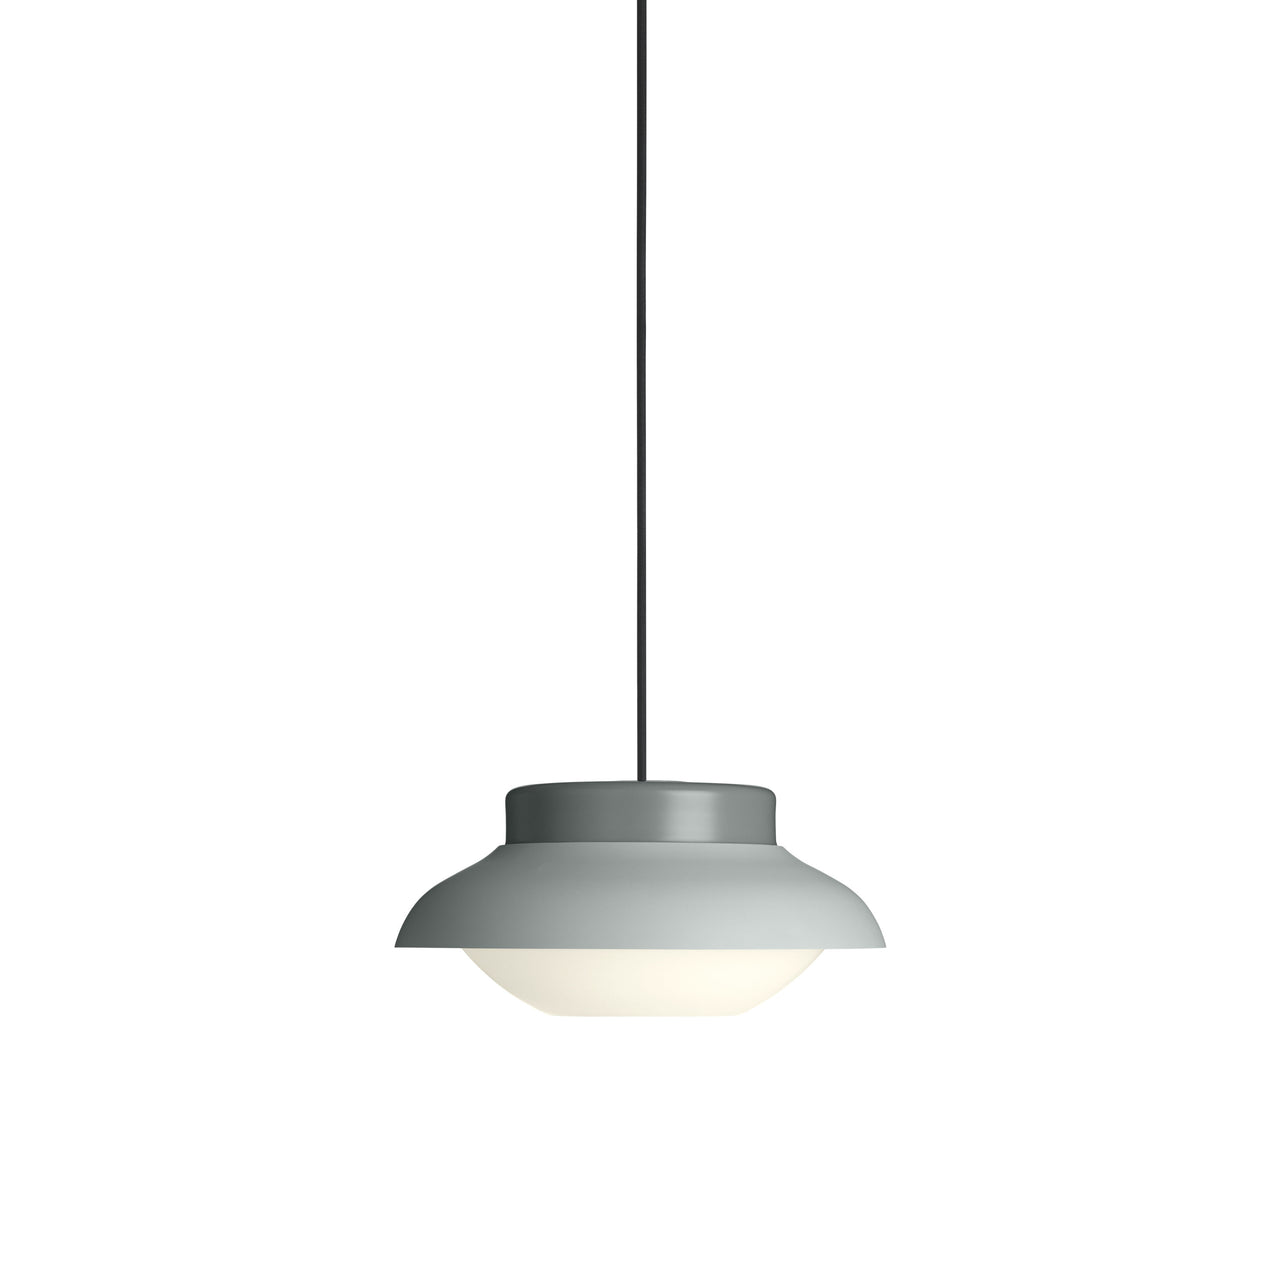 Collar Pendant Light: Small + Soft Fog